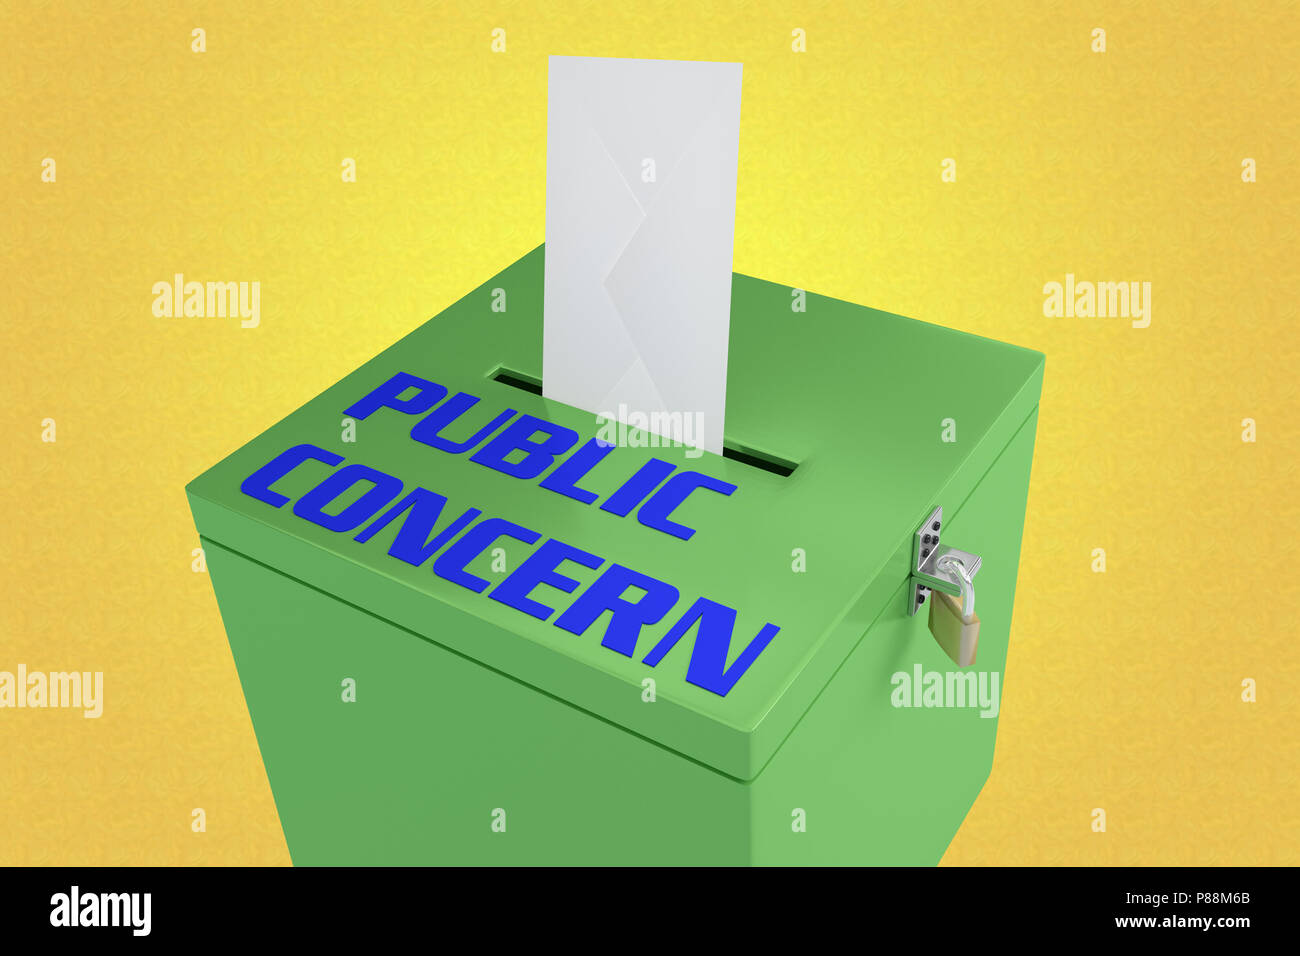 3D illustration of PUBLIC CONCERN script on a ballot box, and an voting envelope been inserted into the ballot box, isolated over a yellow gradient. - Stock Image